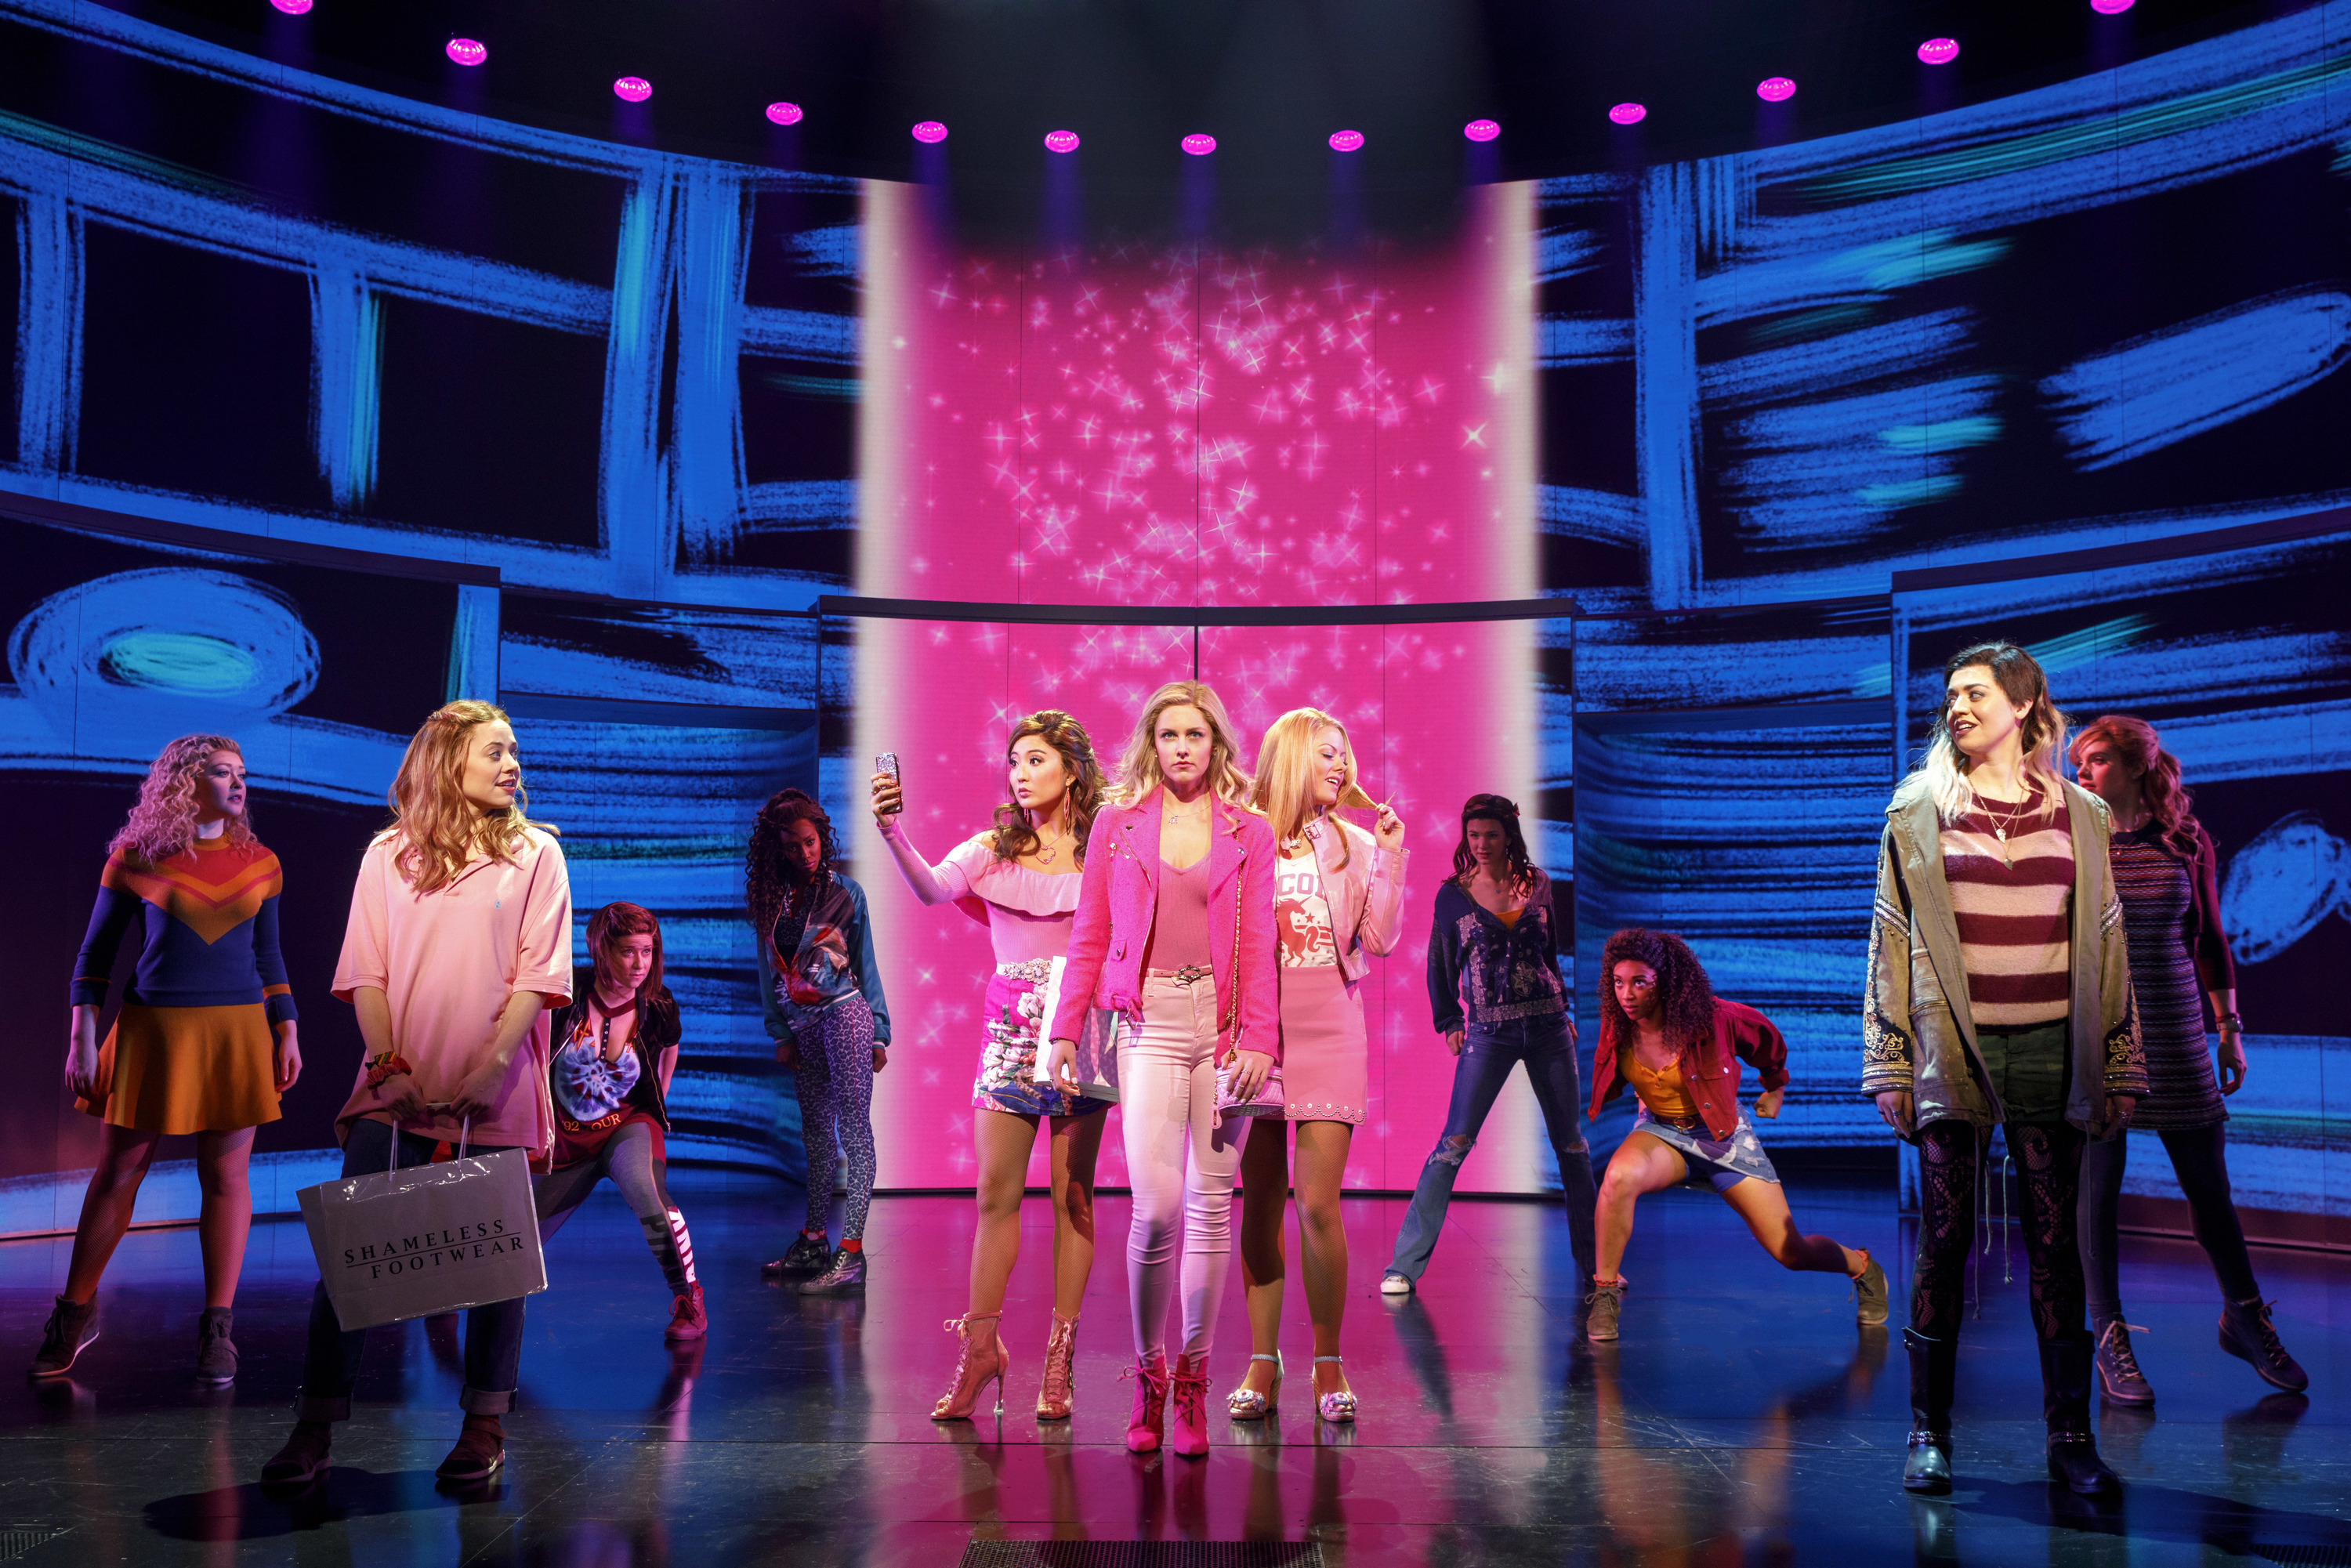 Broadway's 'Mean Girls' Musical is coming to Chicago this year